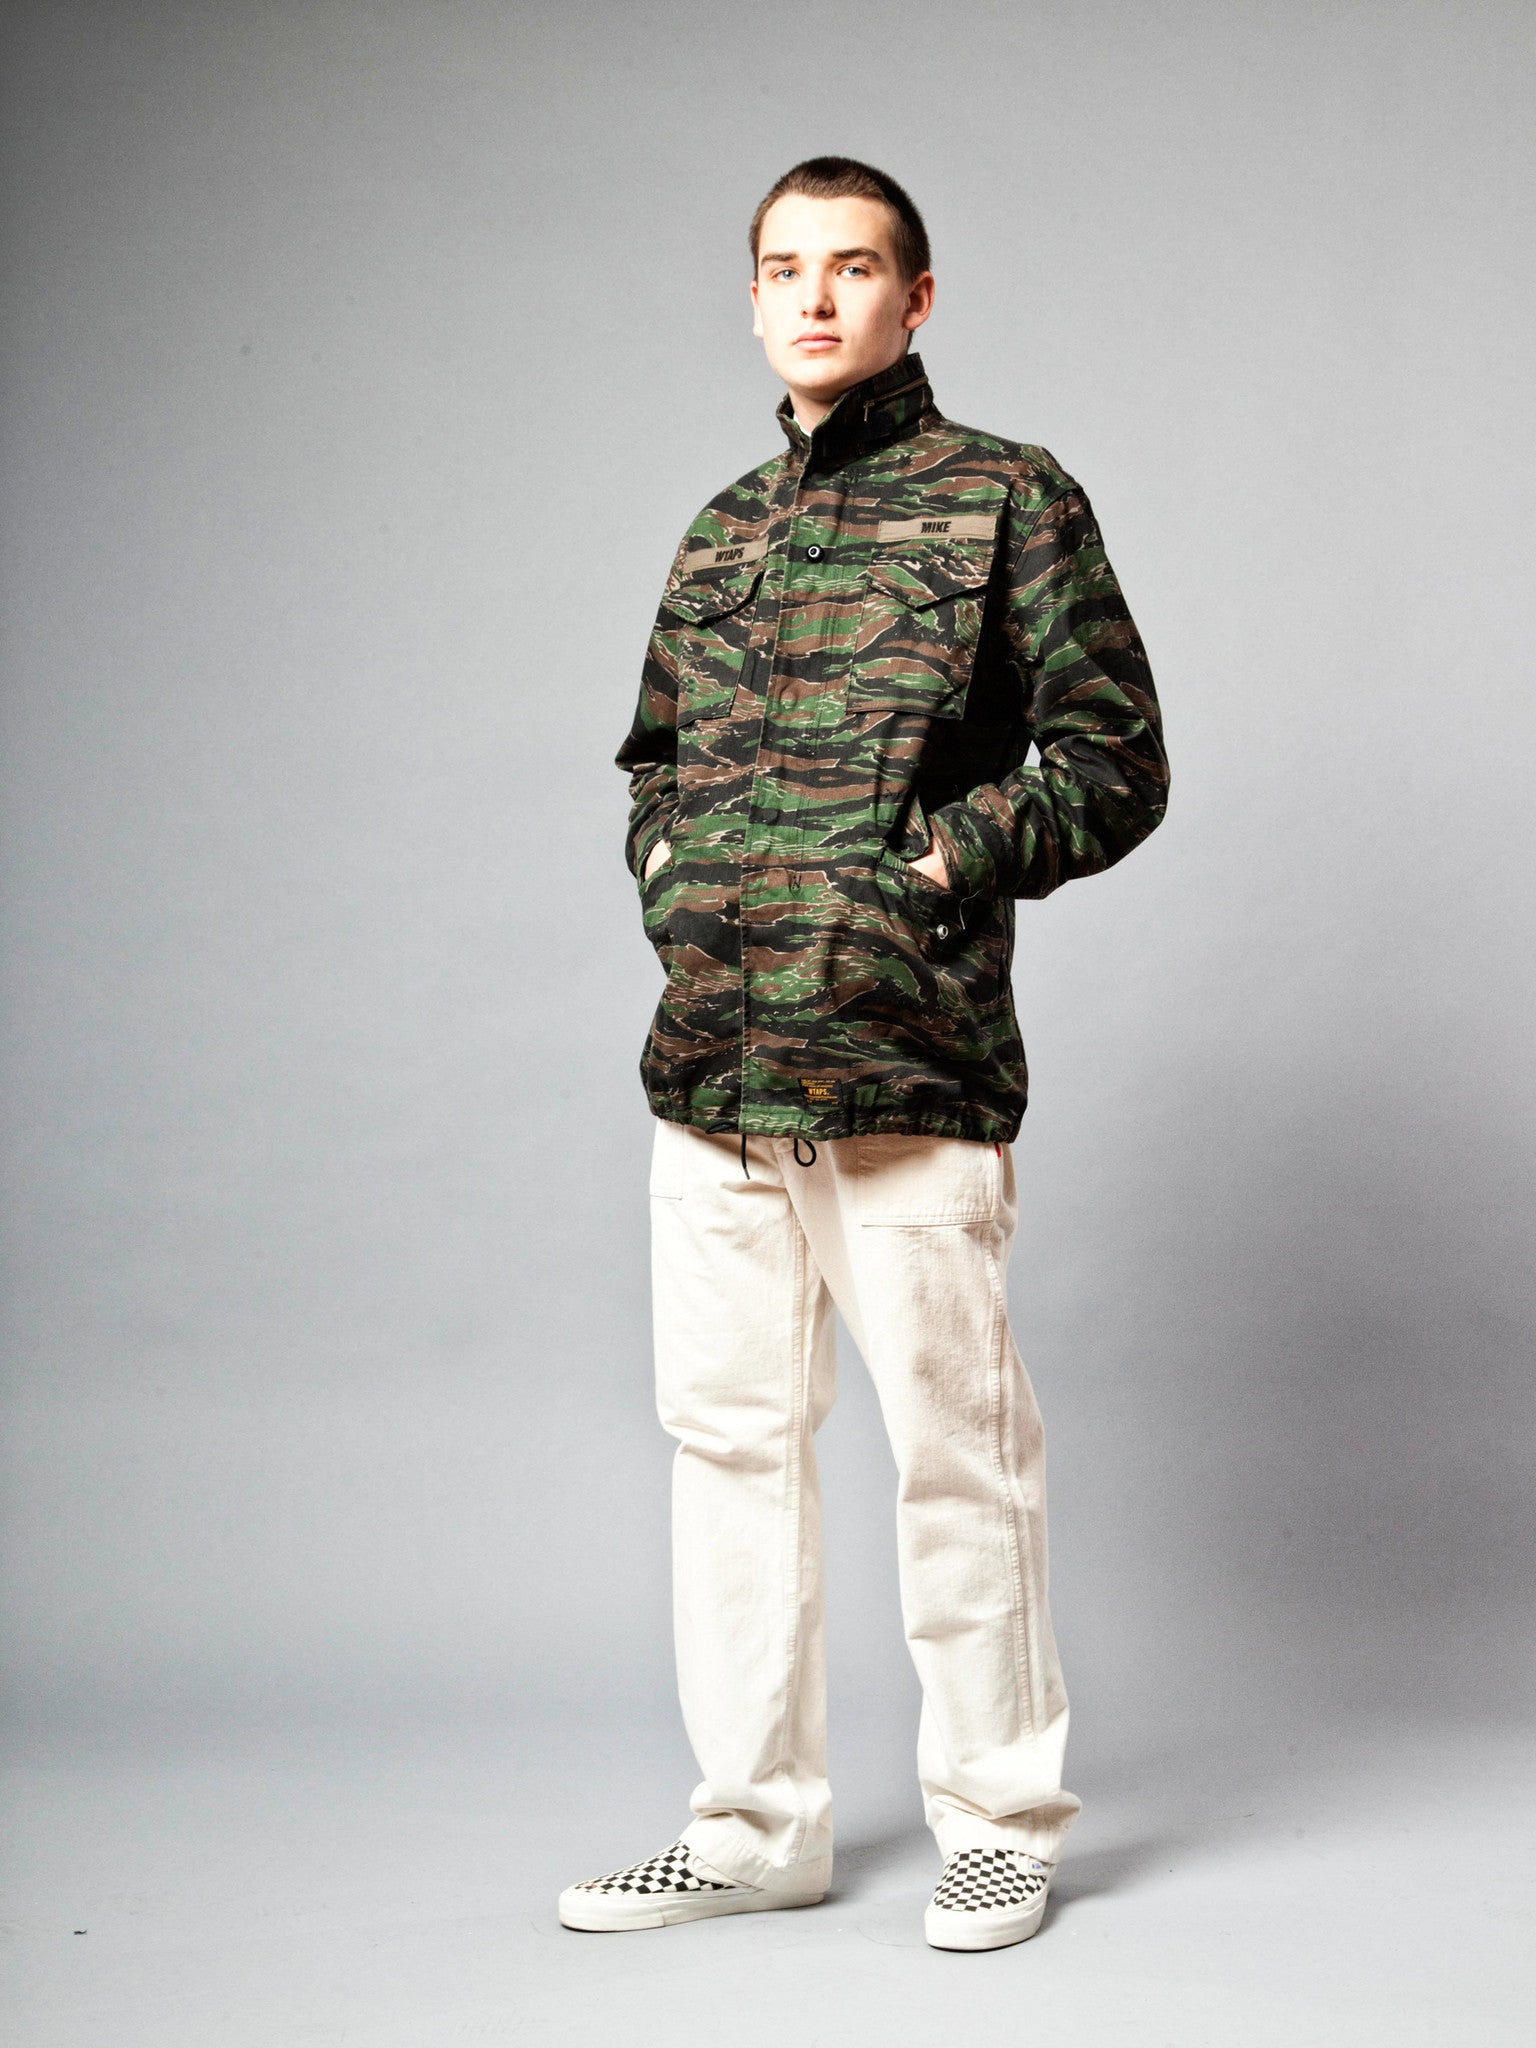 Tiger Stripe M-65 Jacket (Cotton Twill) 3